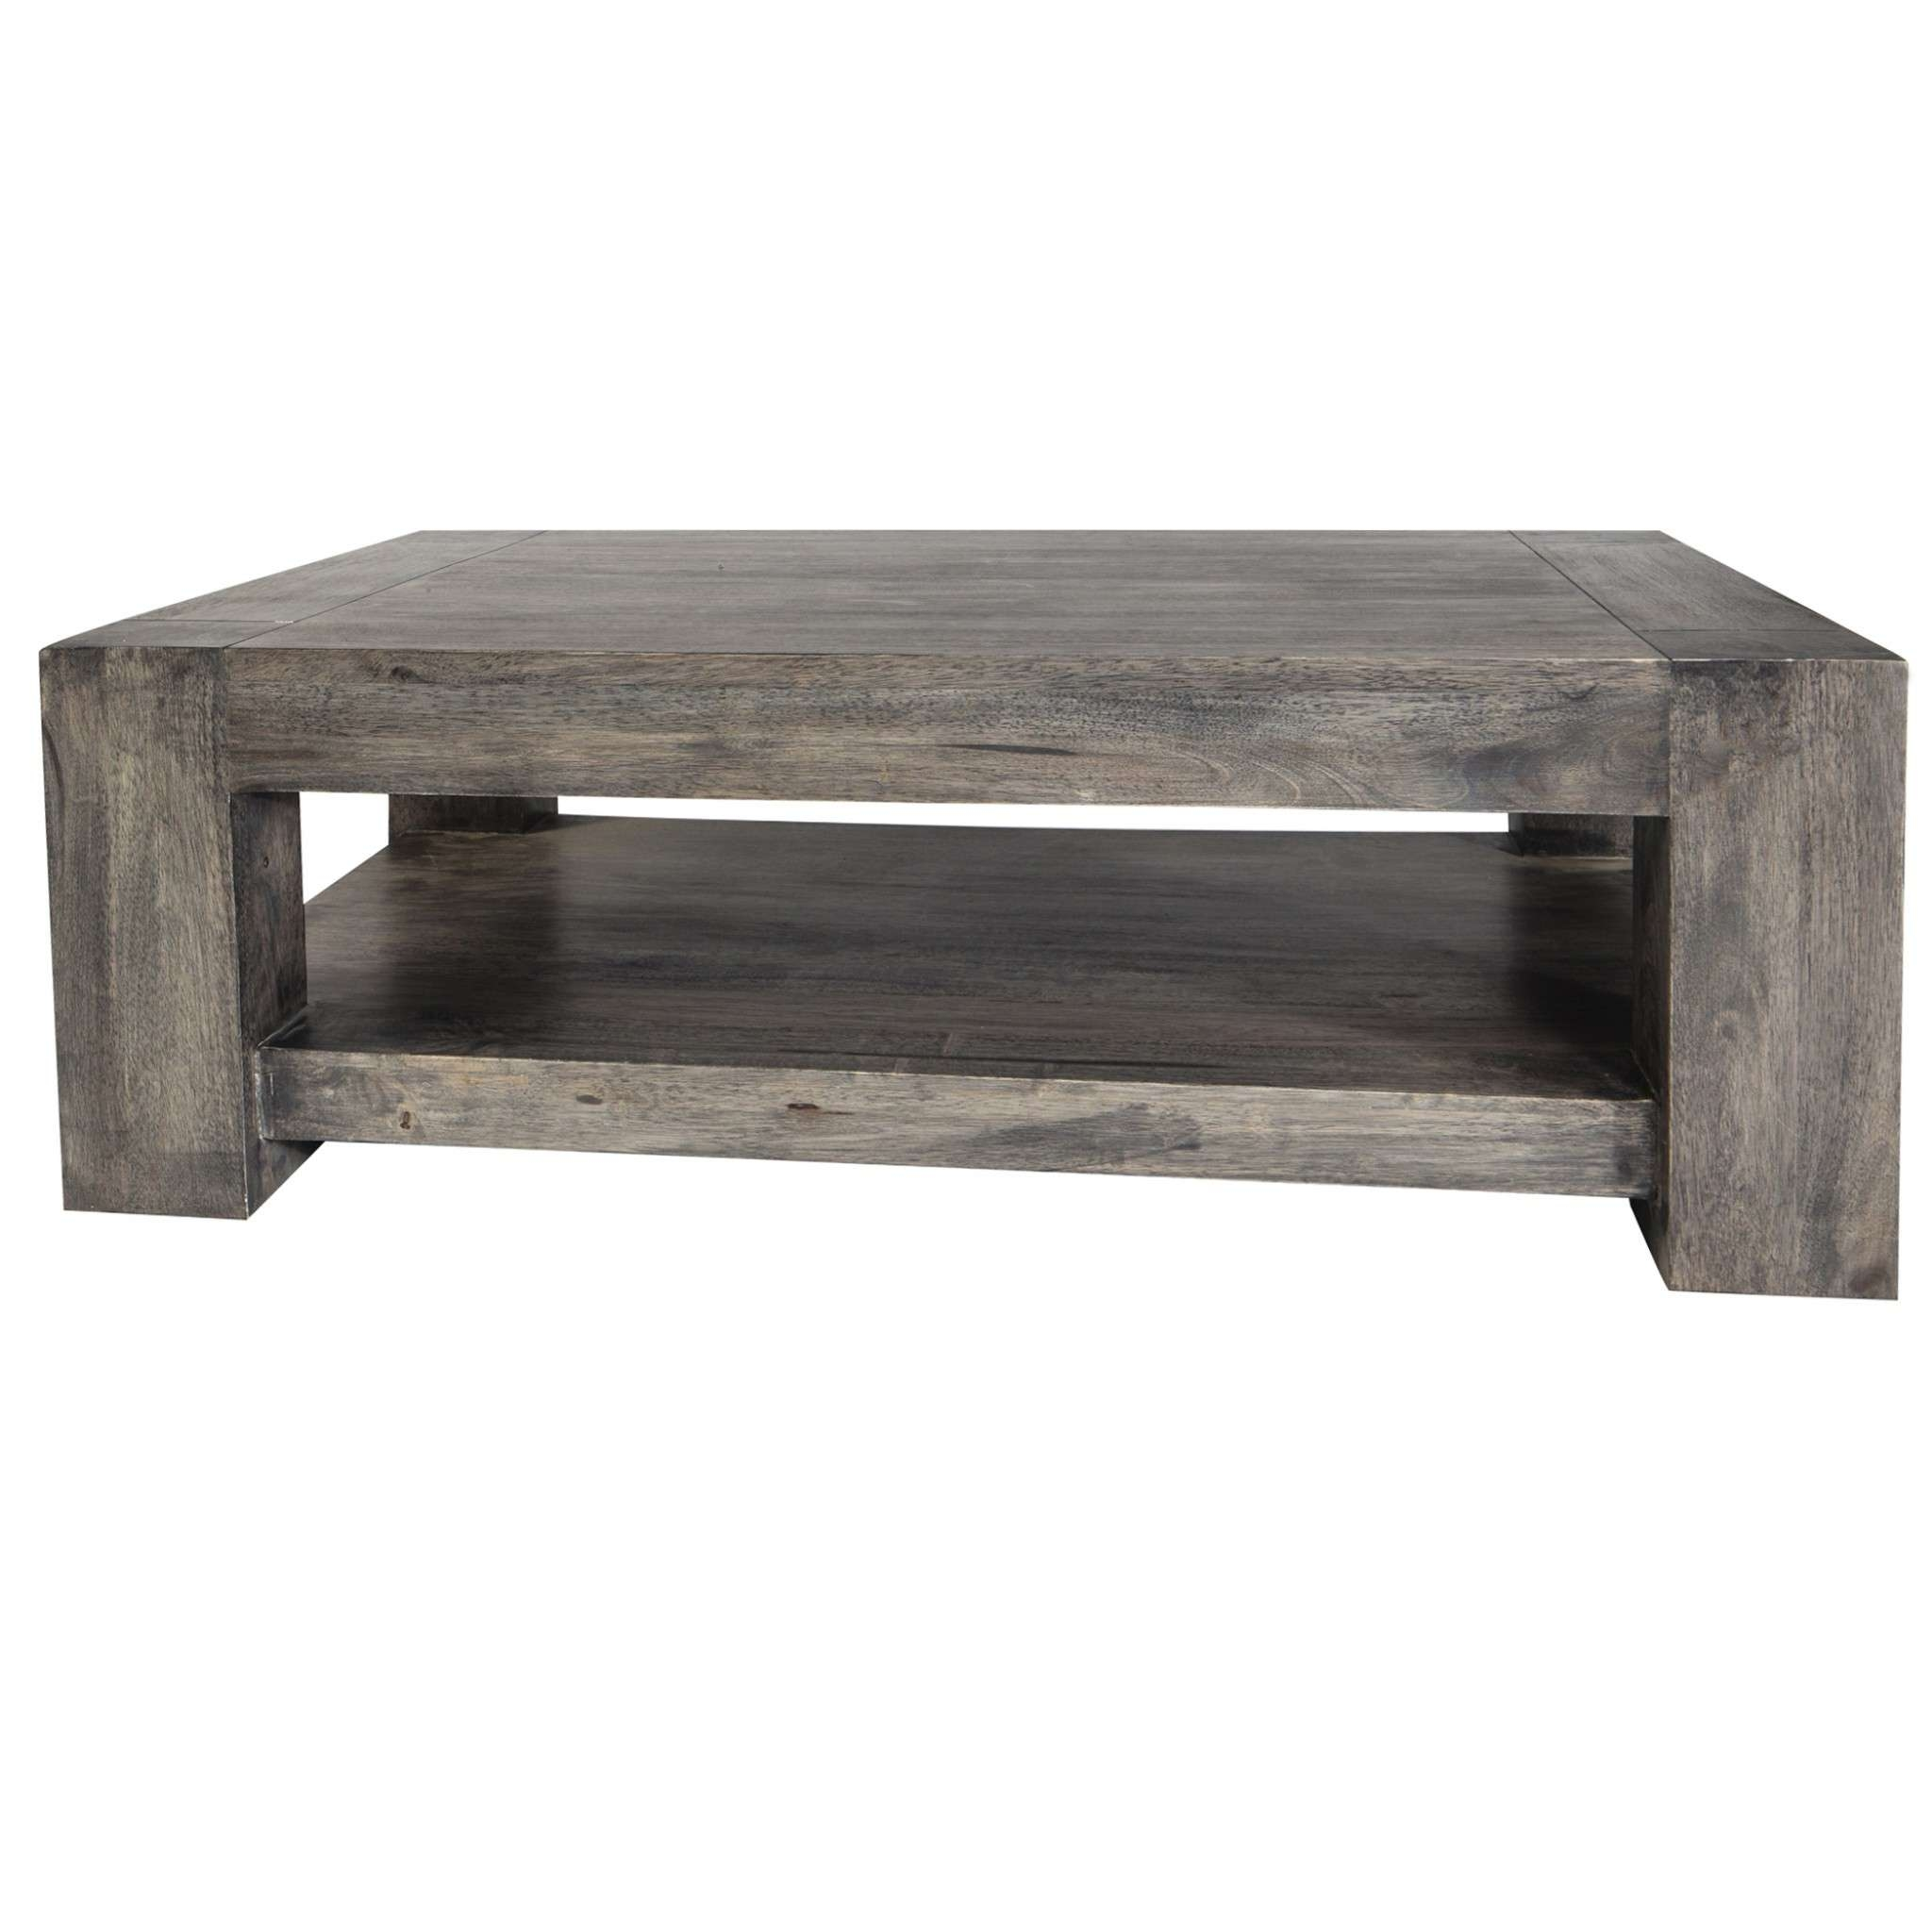 Coffee Table, Masculine Acacia Grey Coffee Table With A Shelf And Intended For Well Known Grey Wood Coffee Tables (View 6 of 20)